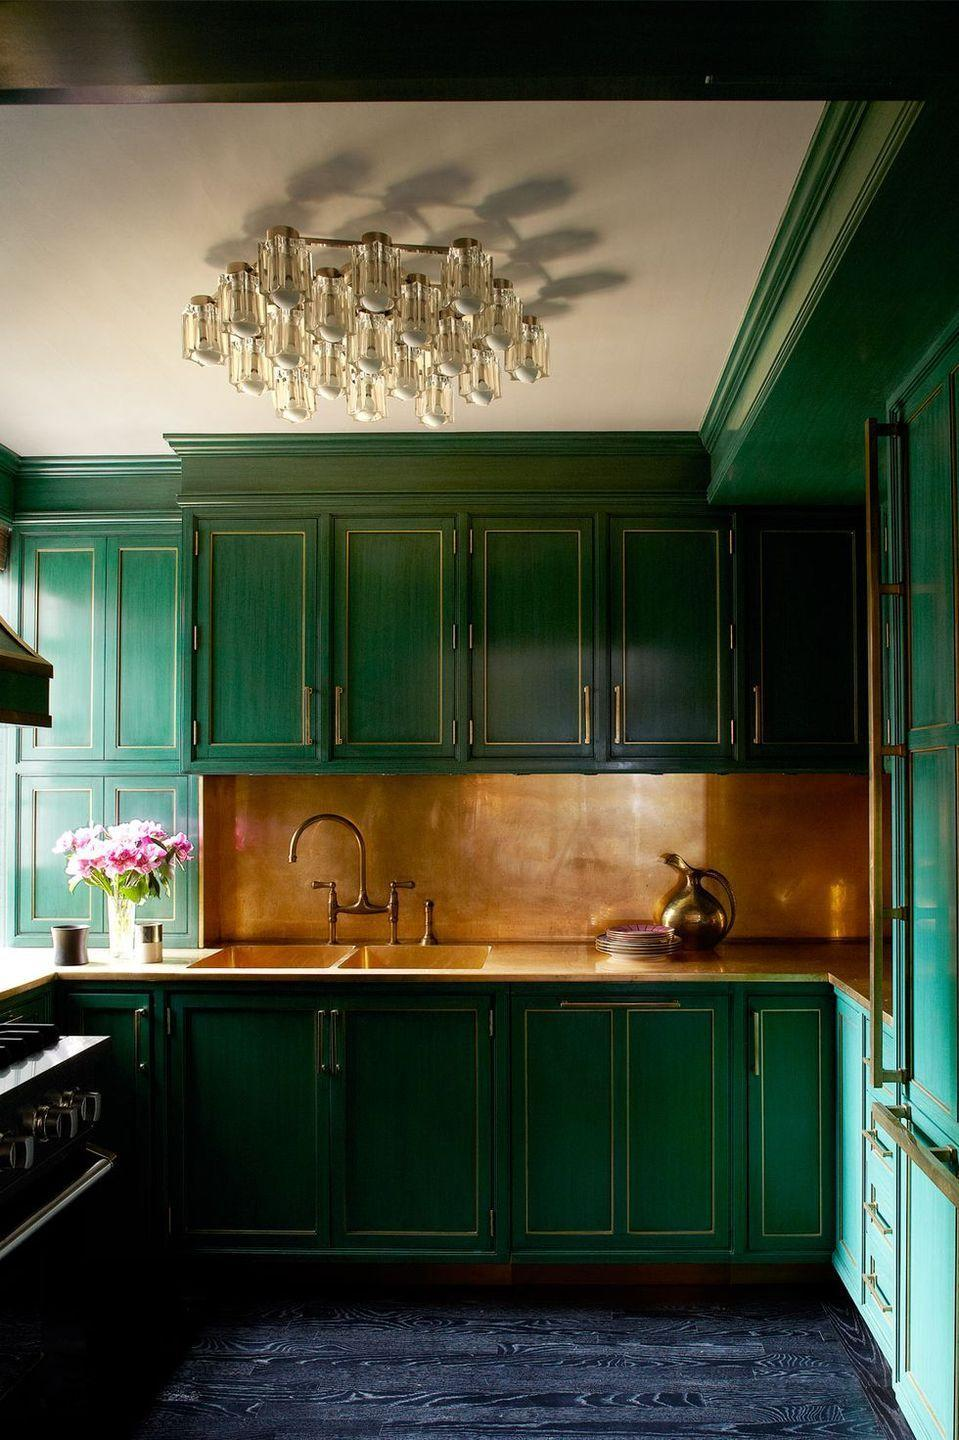 """<p>This bold color trend actually may have started a few years ago in <a href=""""https://www.elledecor.com/celebrity-style/celebrity-homes/news/g498/cameron-diaz-manhattan-apartment/?slide=4"""" rel=""""nofollow noopener"""" target=""""_blank"""" data-ylk=""""slk:Cameron Diaz"""" class=""""link rapid-noclick-resp"""">Cameron Diaz</a>'s Kelly Wearstler–designed home, but green cabinets took on a new cult following this past year thanks to Gen Z's worship (on TikTok, of all places) of Dakota Johnson's alligator green kitchen. The green tones may be more muted nowadays, but it's clear that this color family is here to stay. </p>"""